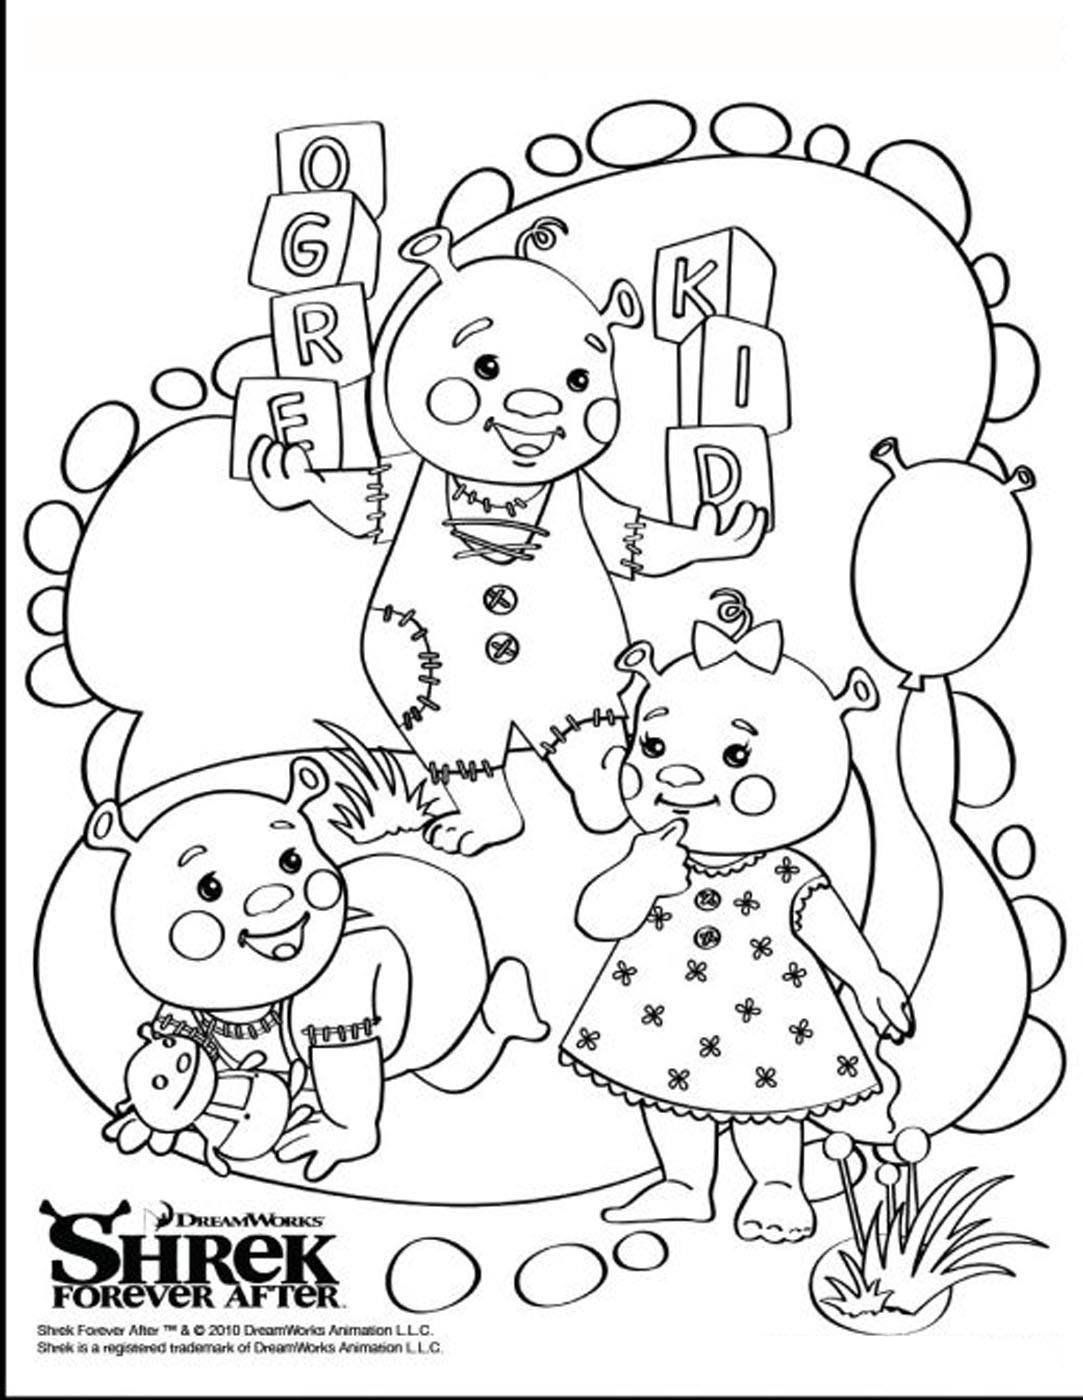 Simple Shrek coloring page to download for free